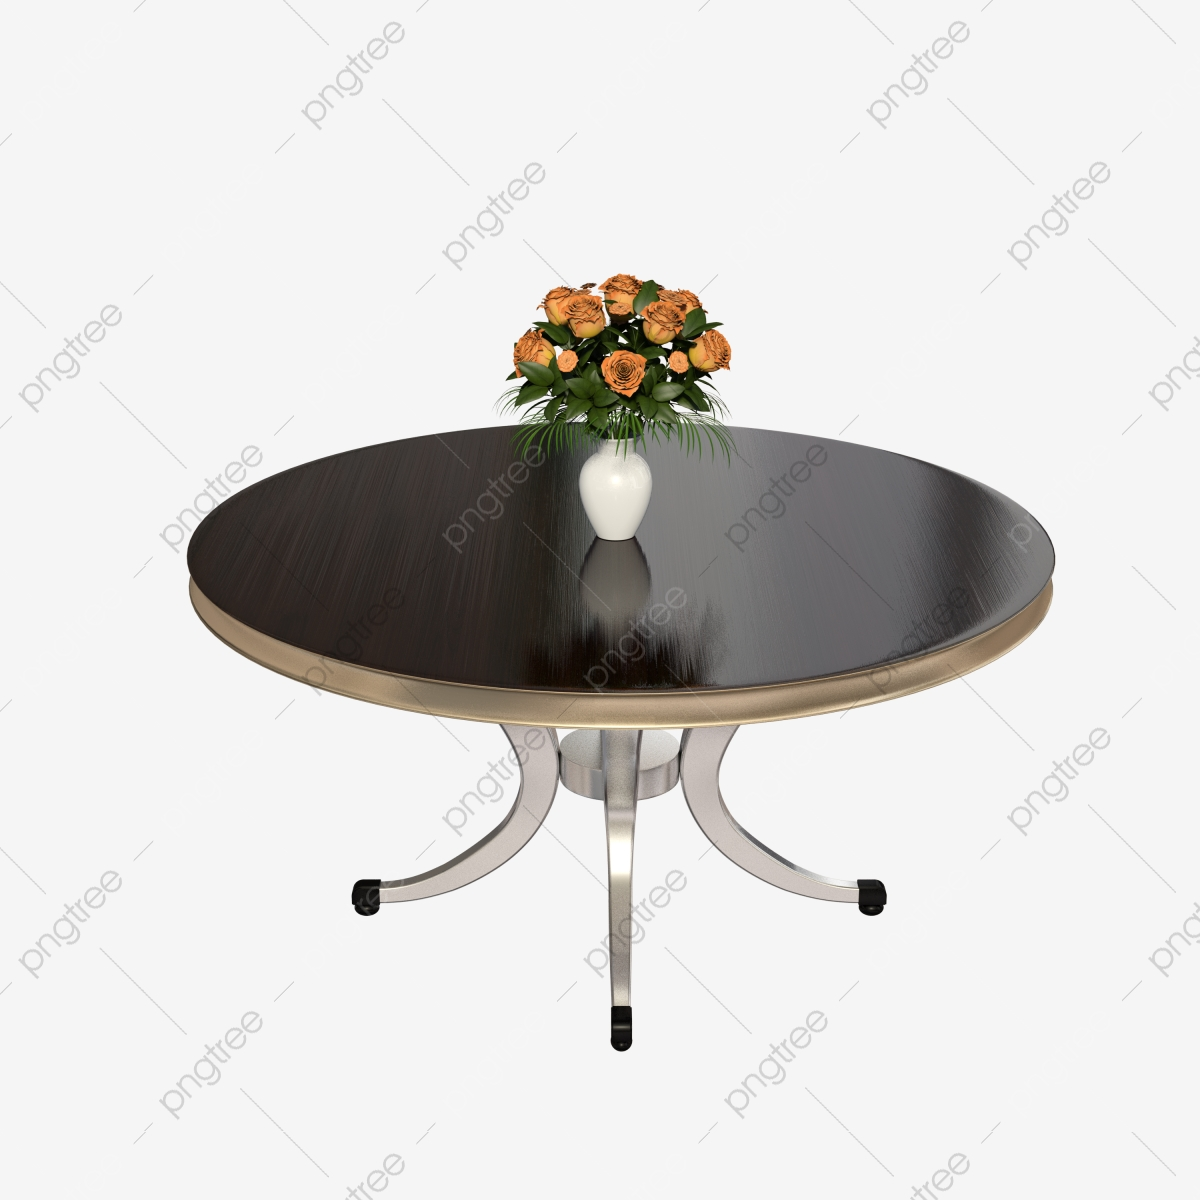 https pngtree com freepng simple wooden round coffee table 4453536 html